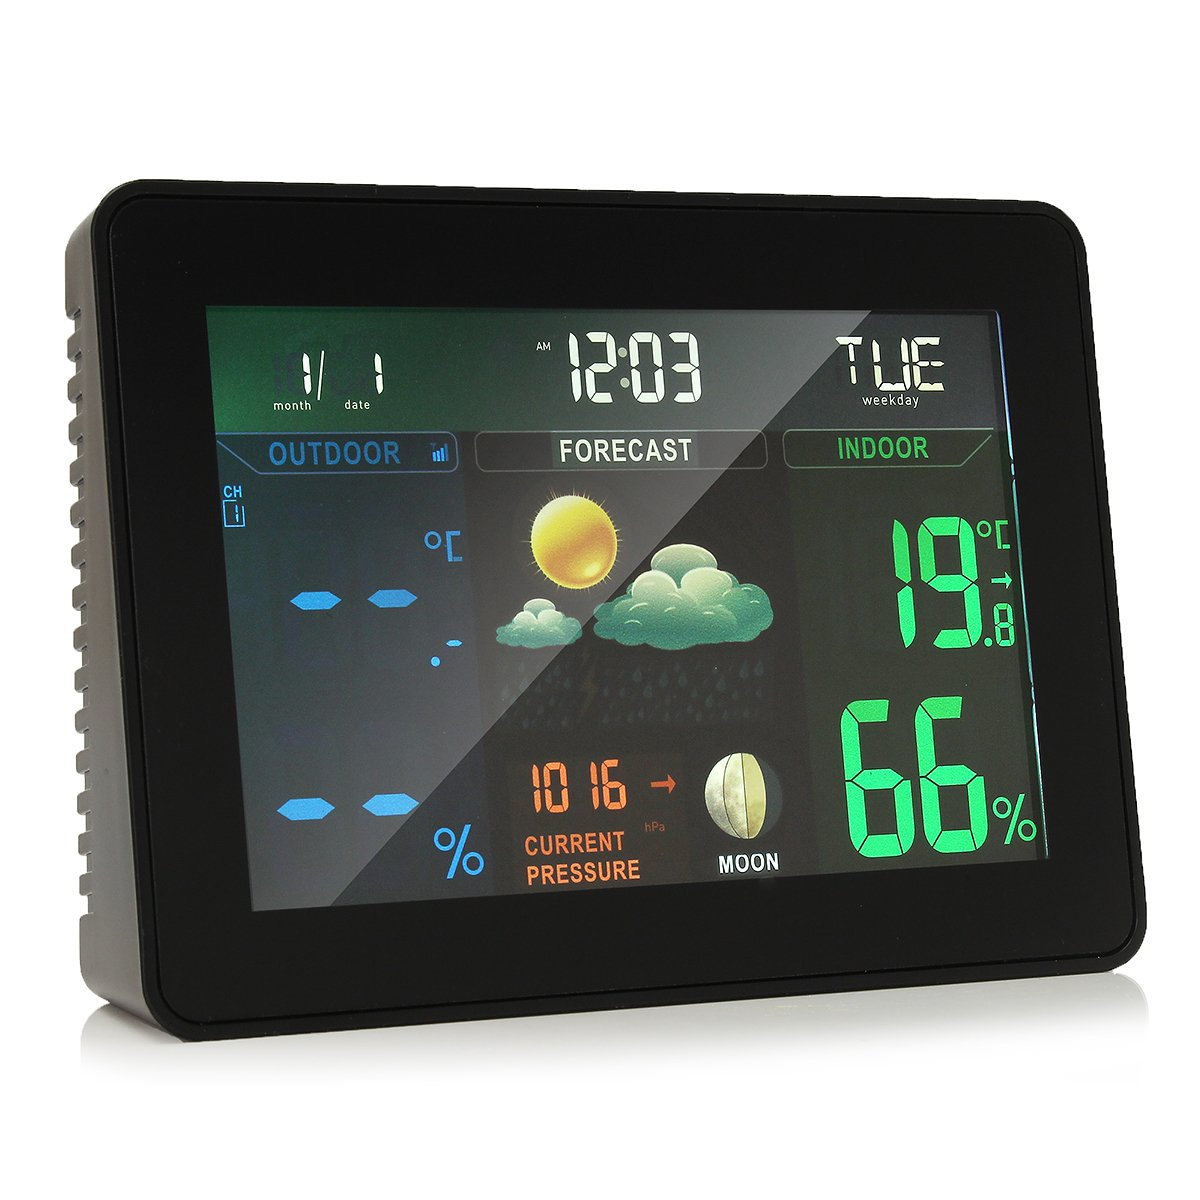 INNI Wireless Colorful Wireless Weather Station Forecast Indoor/Outdoor Thermometer